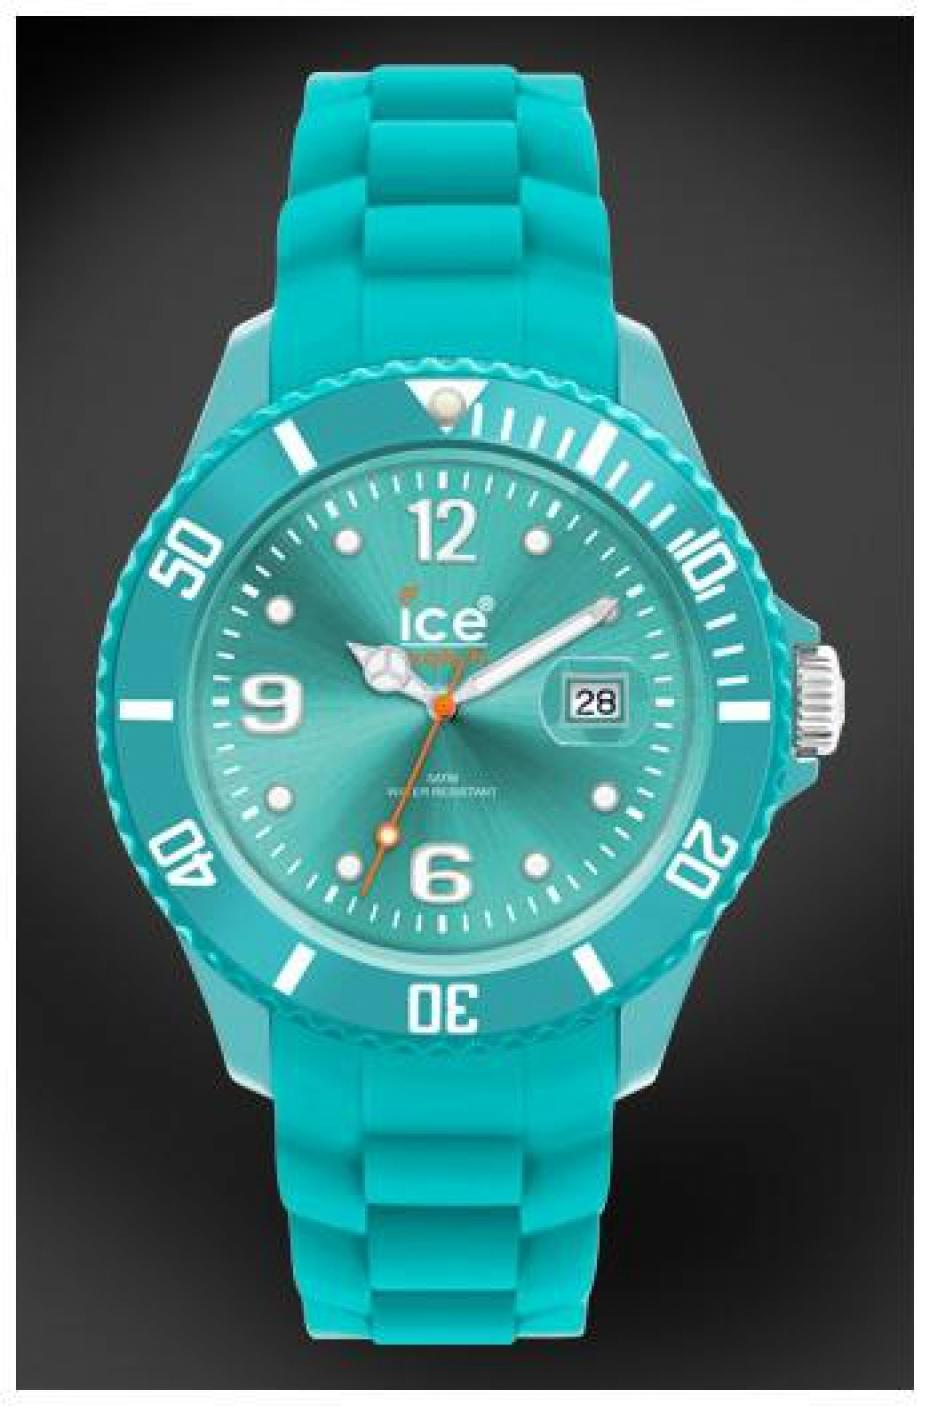 Ice watch - Montre ice watch bleu turquoise ...